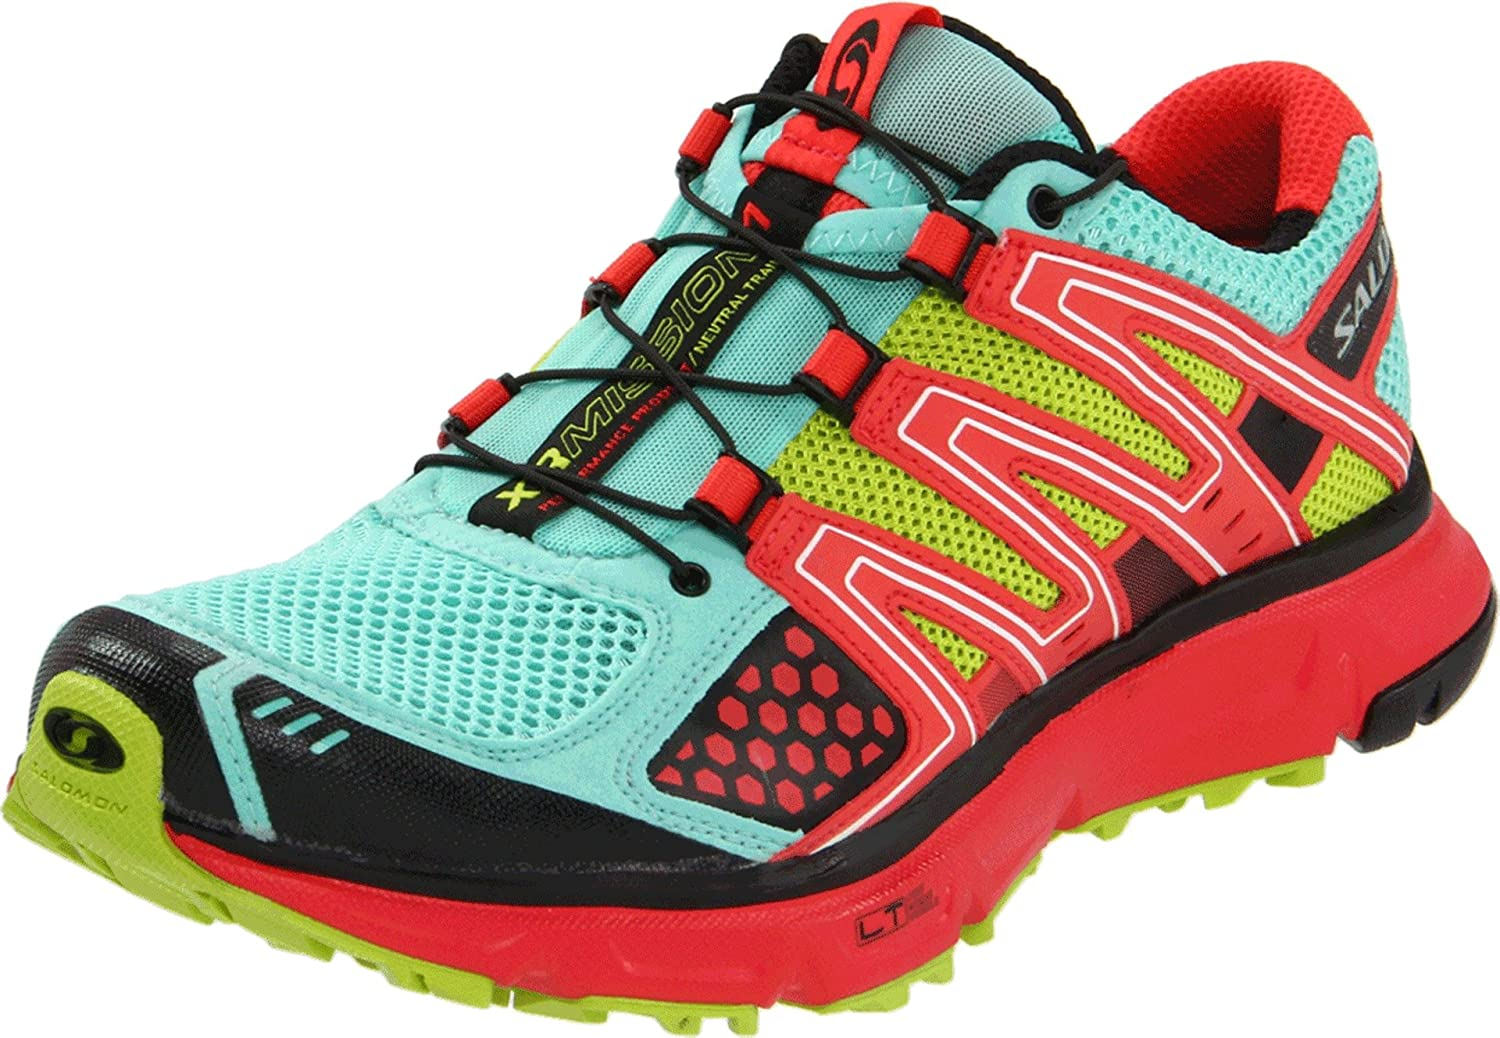 Best Place To Order Running Shoes